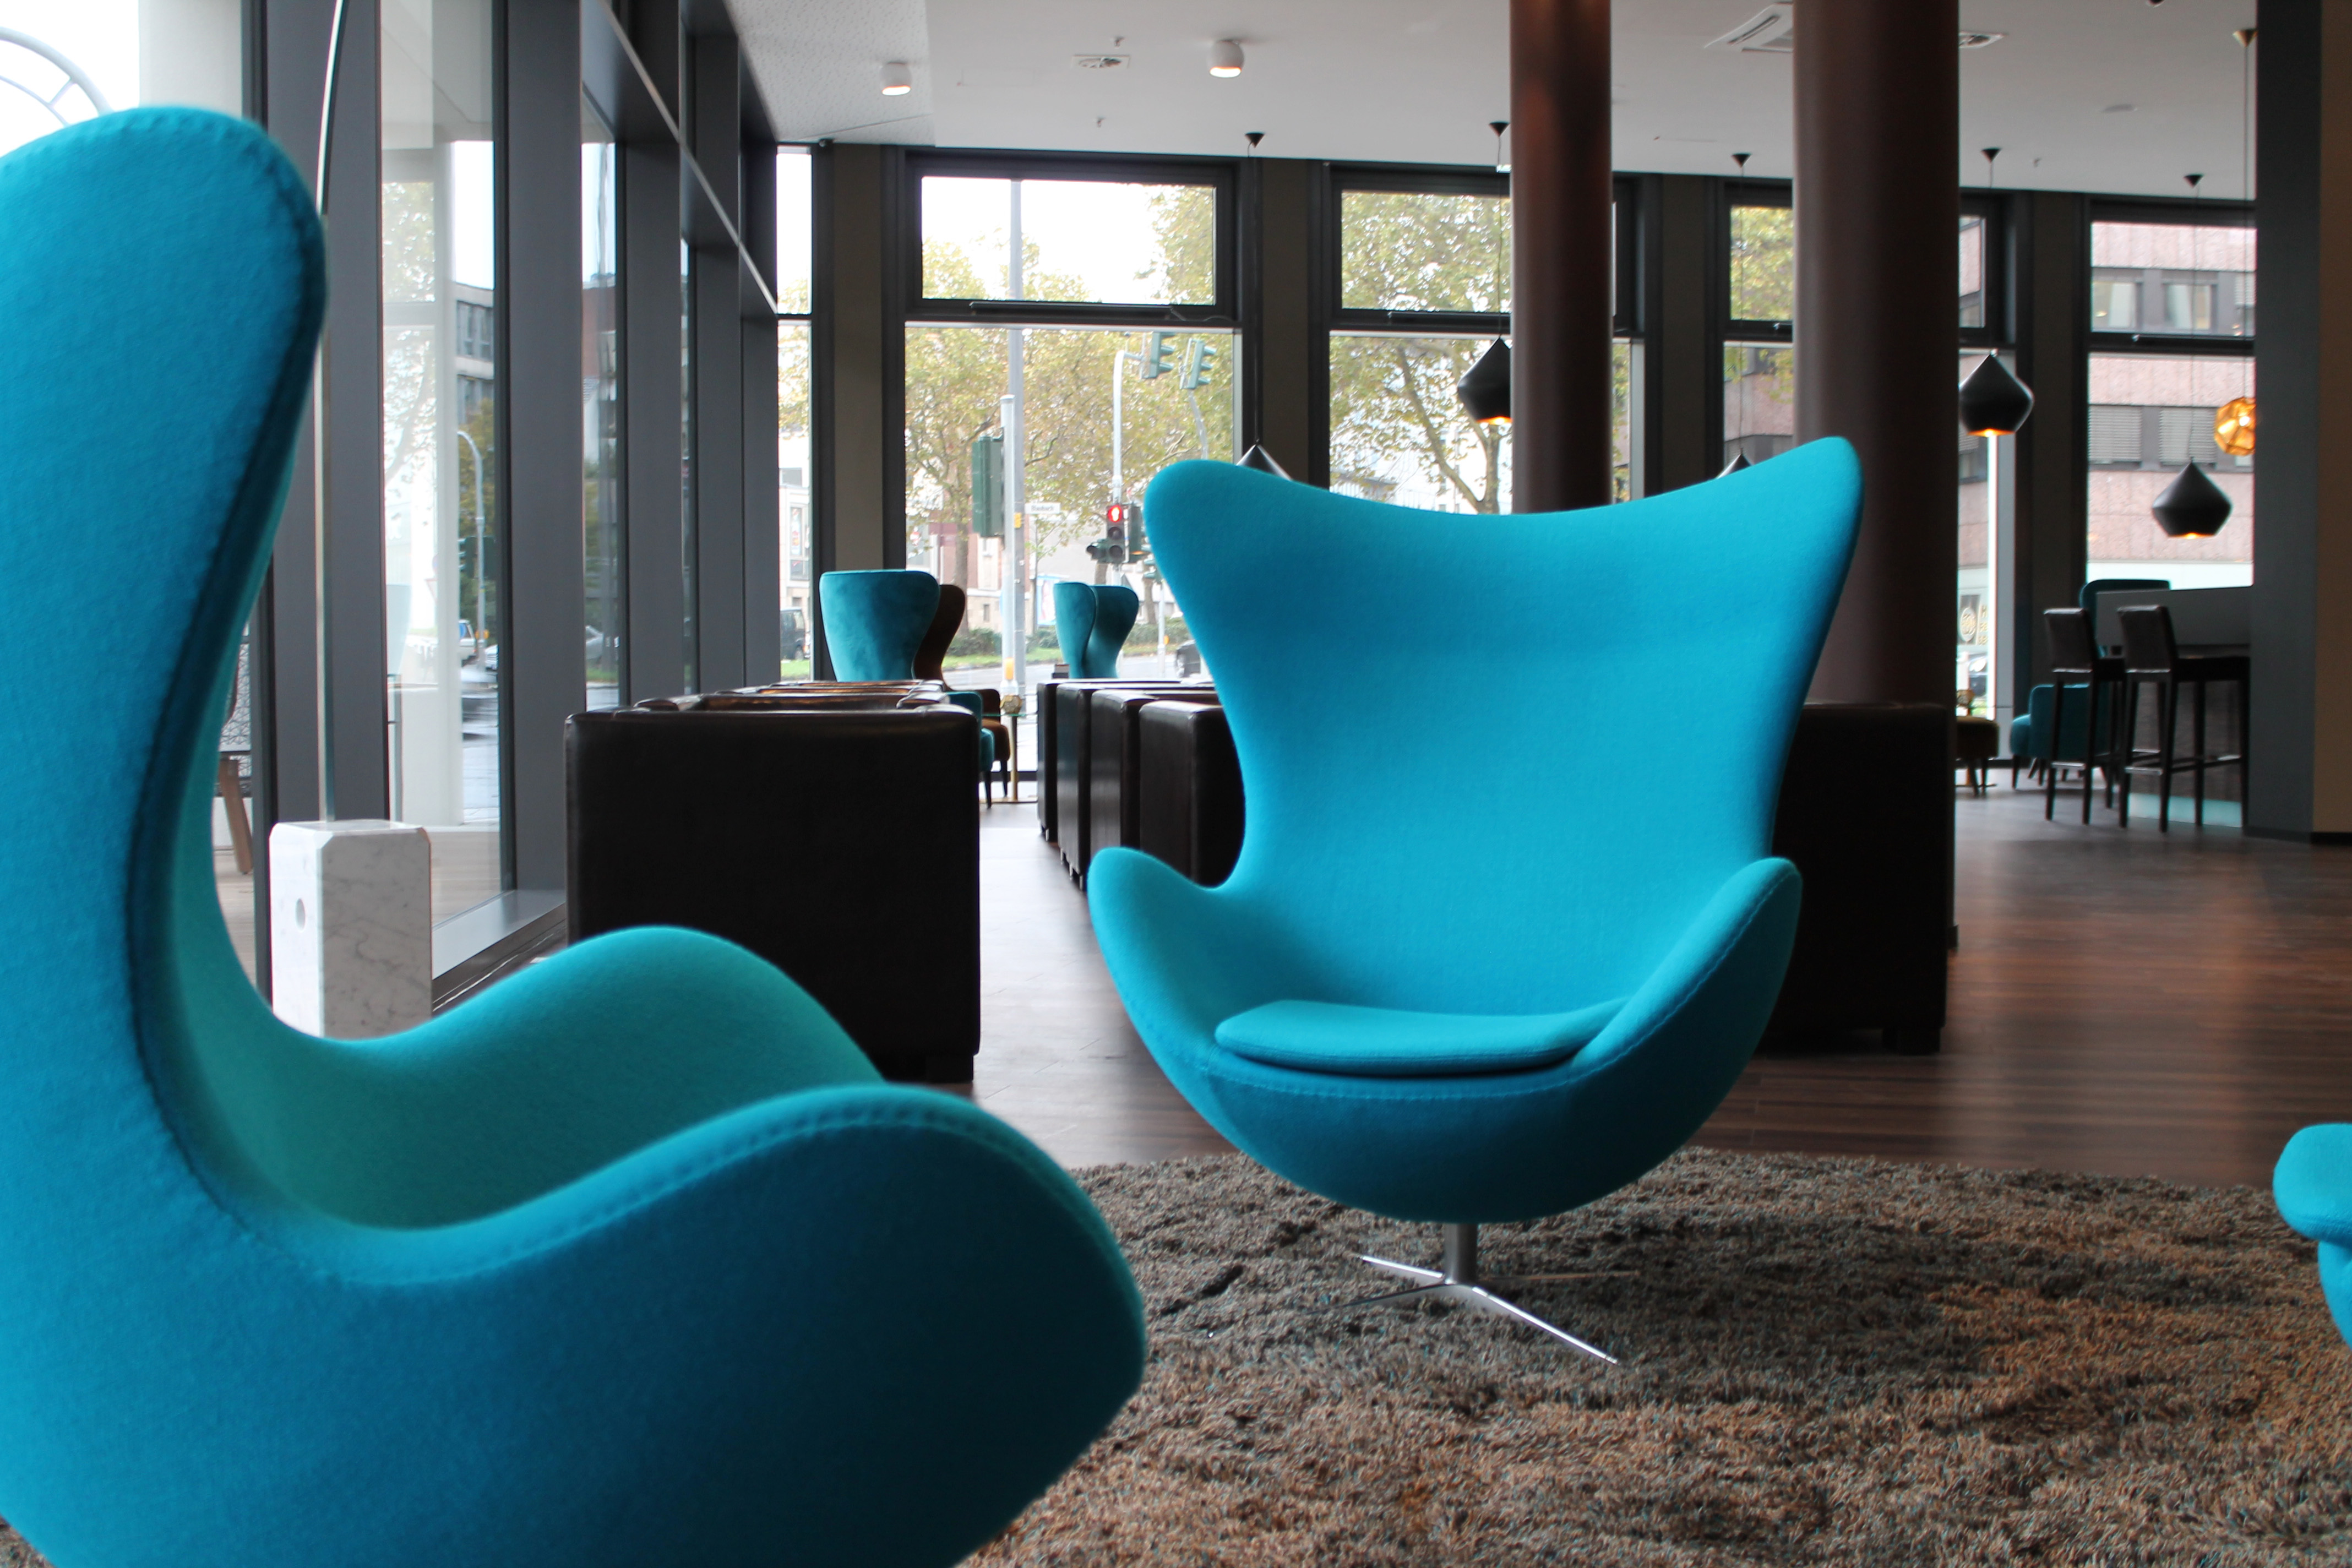 GroBartig Motel One